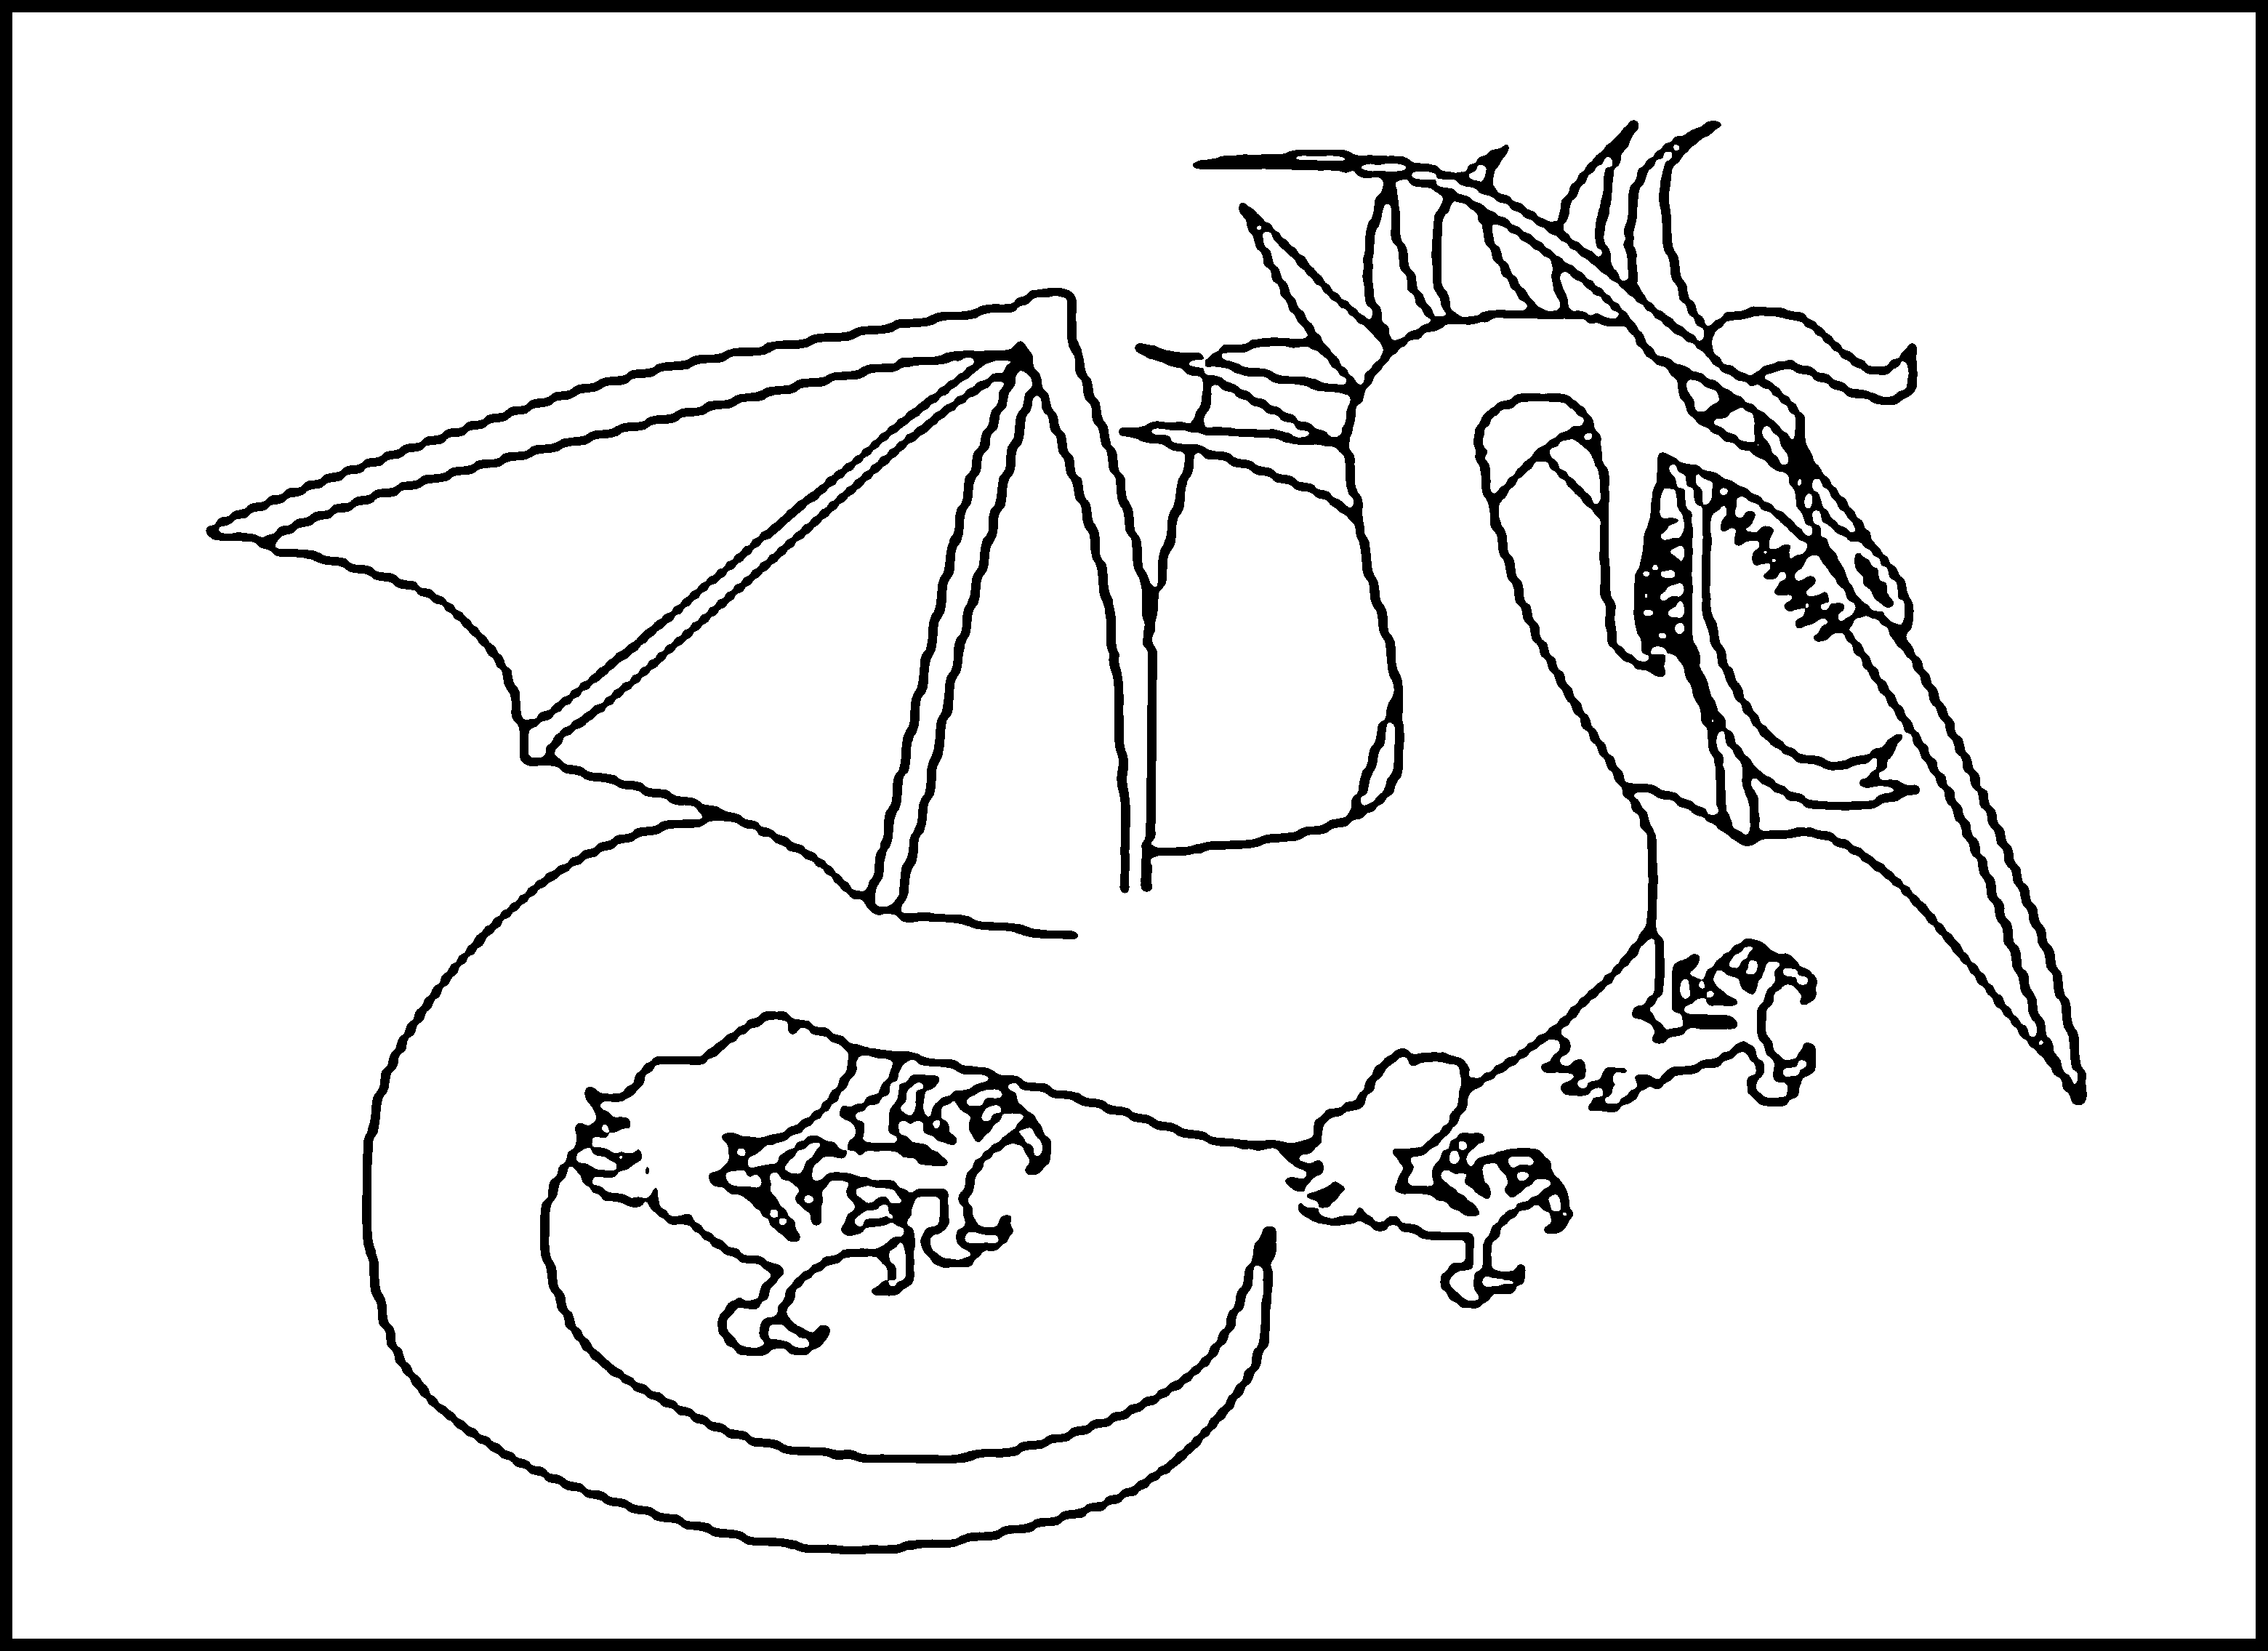 Printable coloring pages dragons - Dragon Printable Coloring Pages